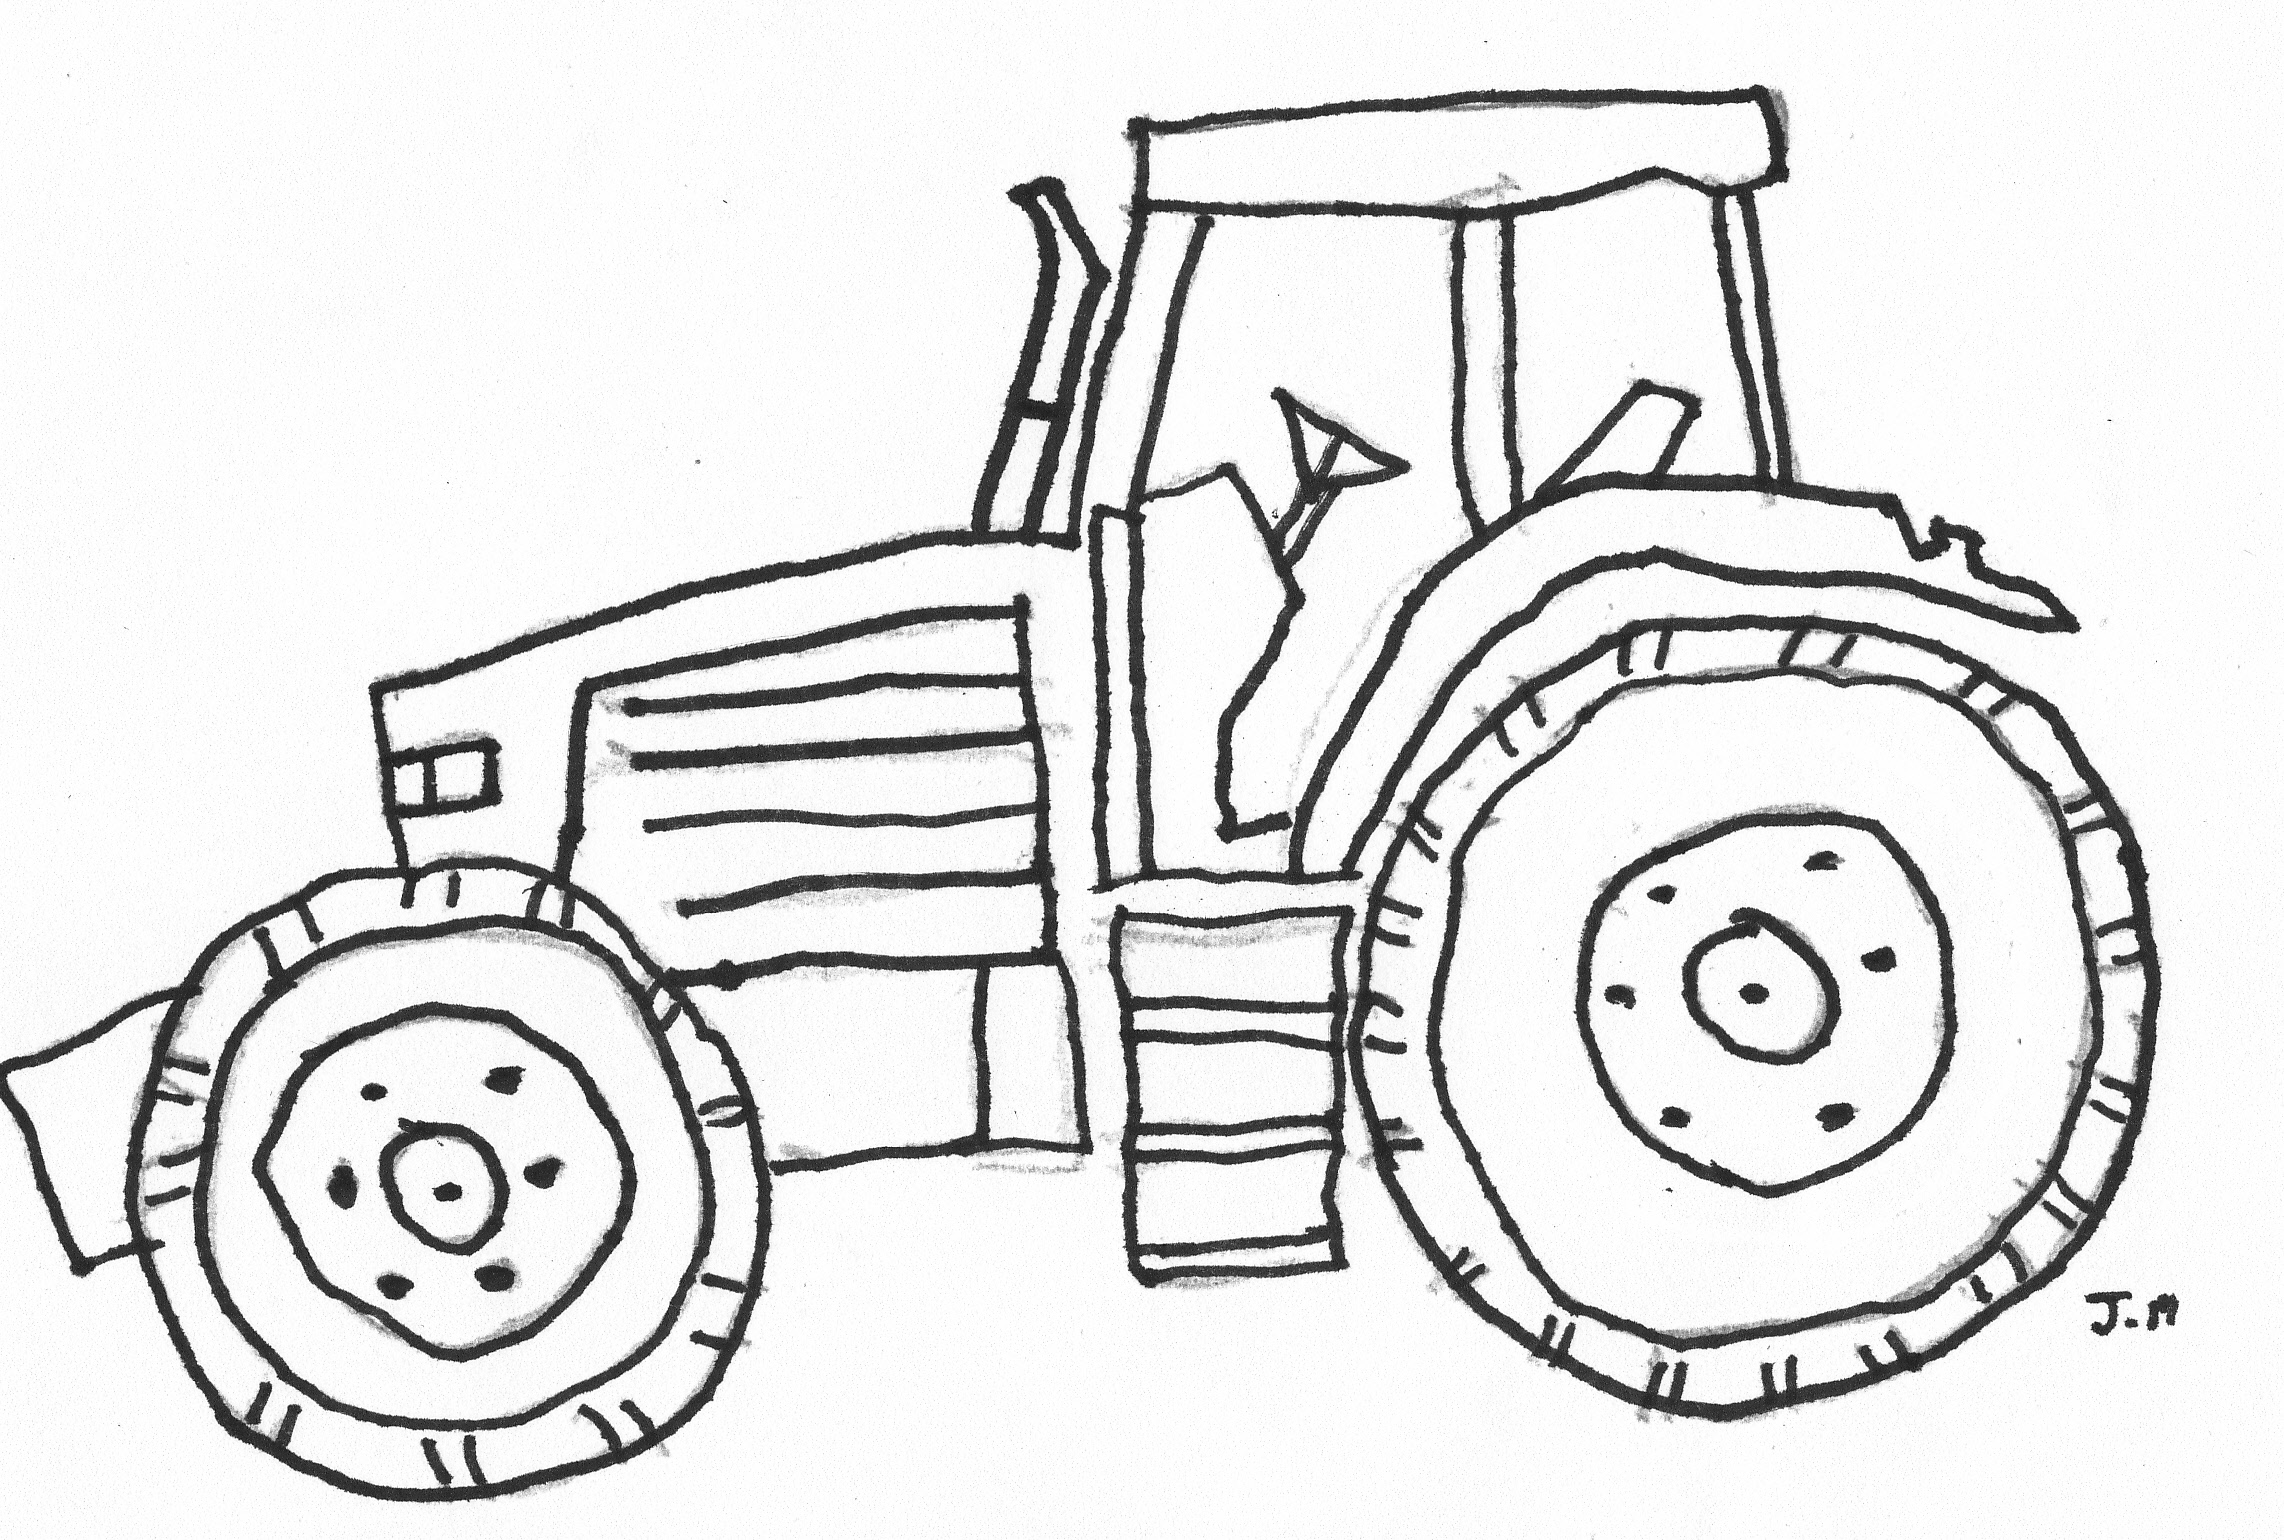 tractor color pages fired up free tractor coloring tractors tractor parts pages tractor color